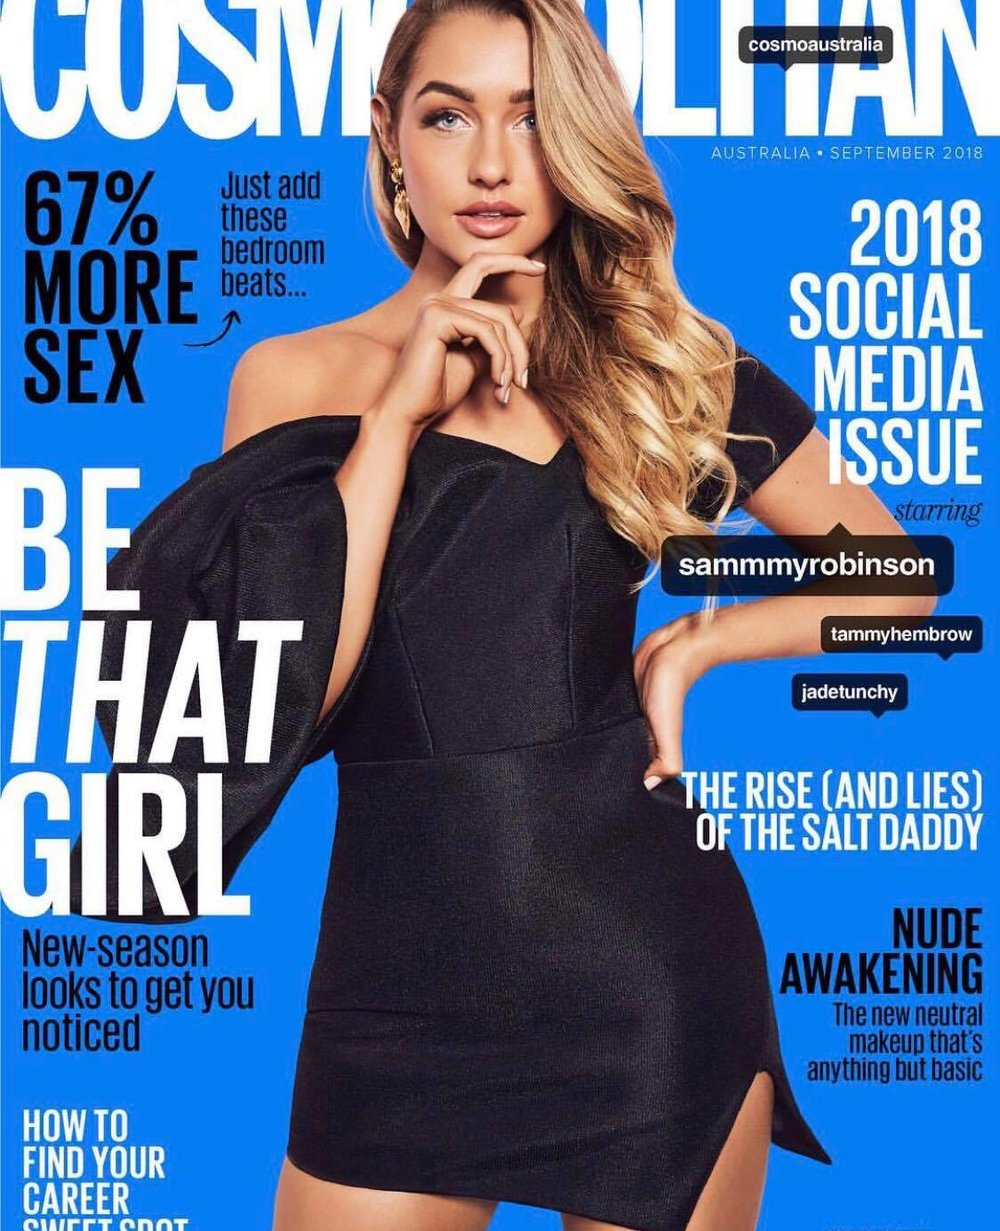 Wearing the Amore Earrings on the cover of Cosmopolitan Australia